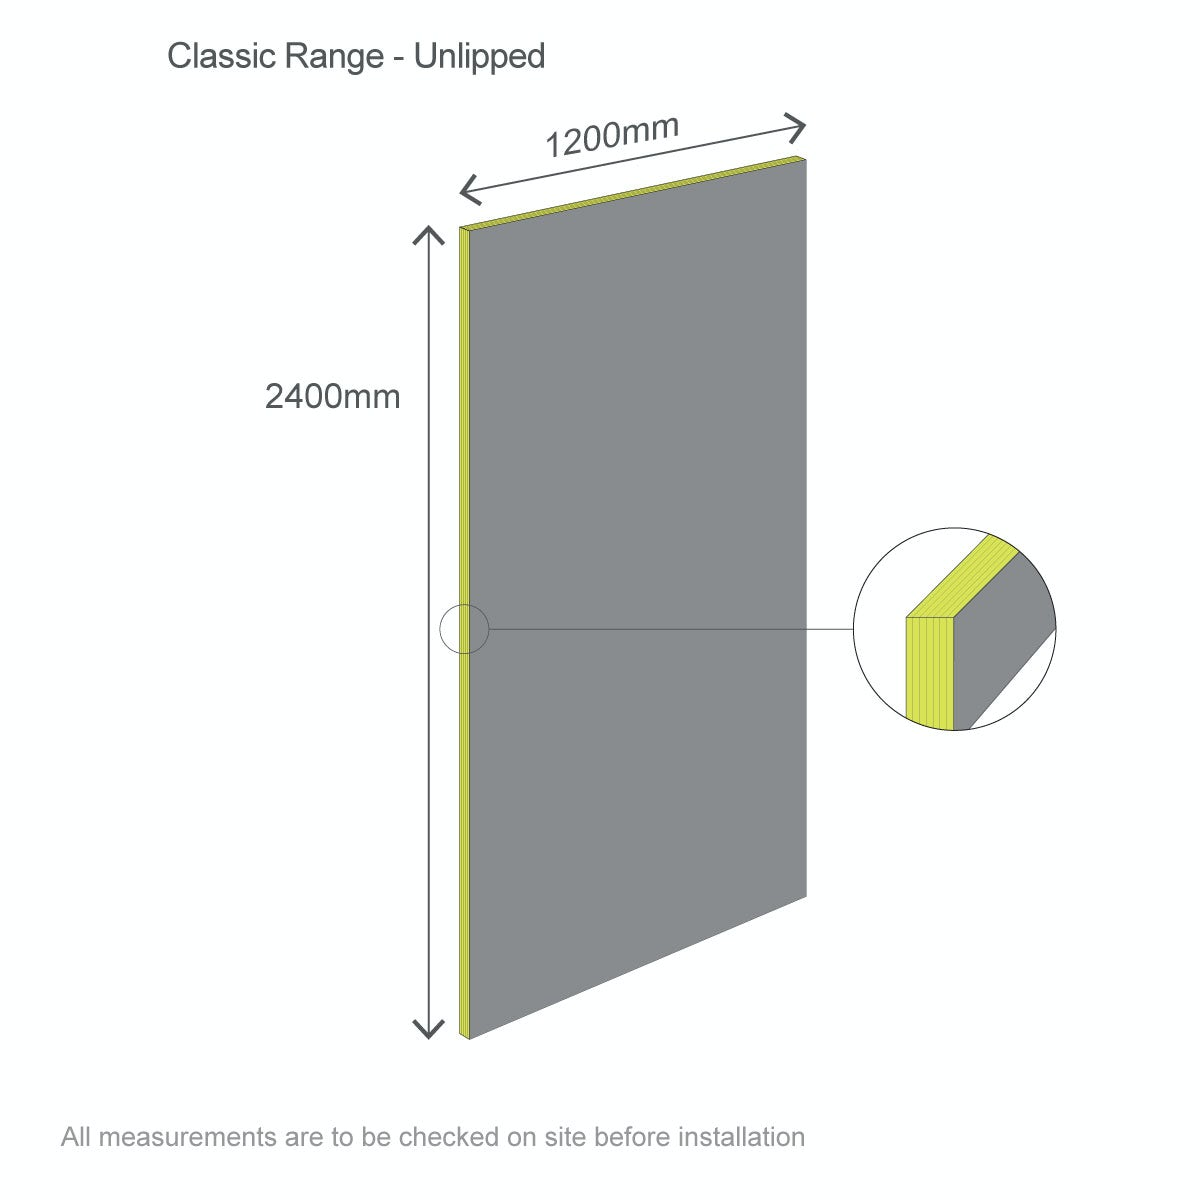 Dimensions for Multipanel Classic Monsoon unlipped shower wall panel 2400 x 1200